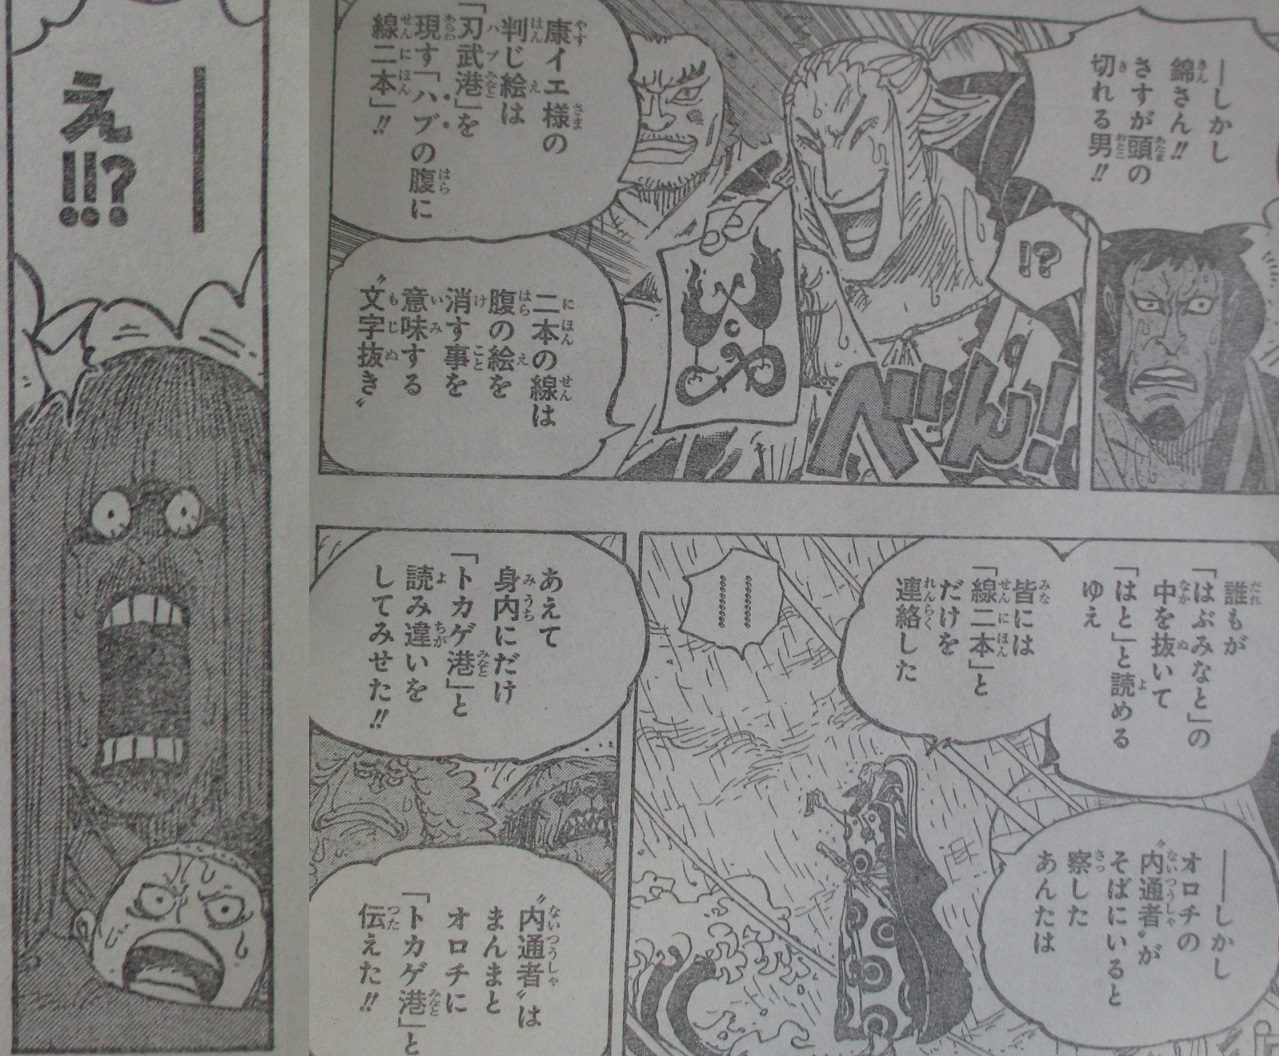 One Piece Spoilers 975 01